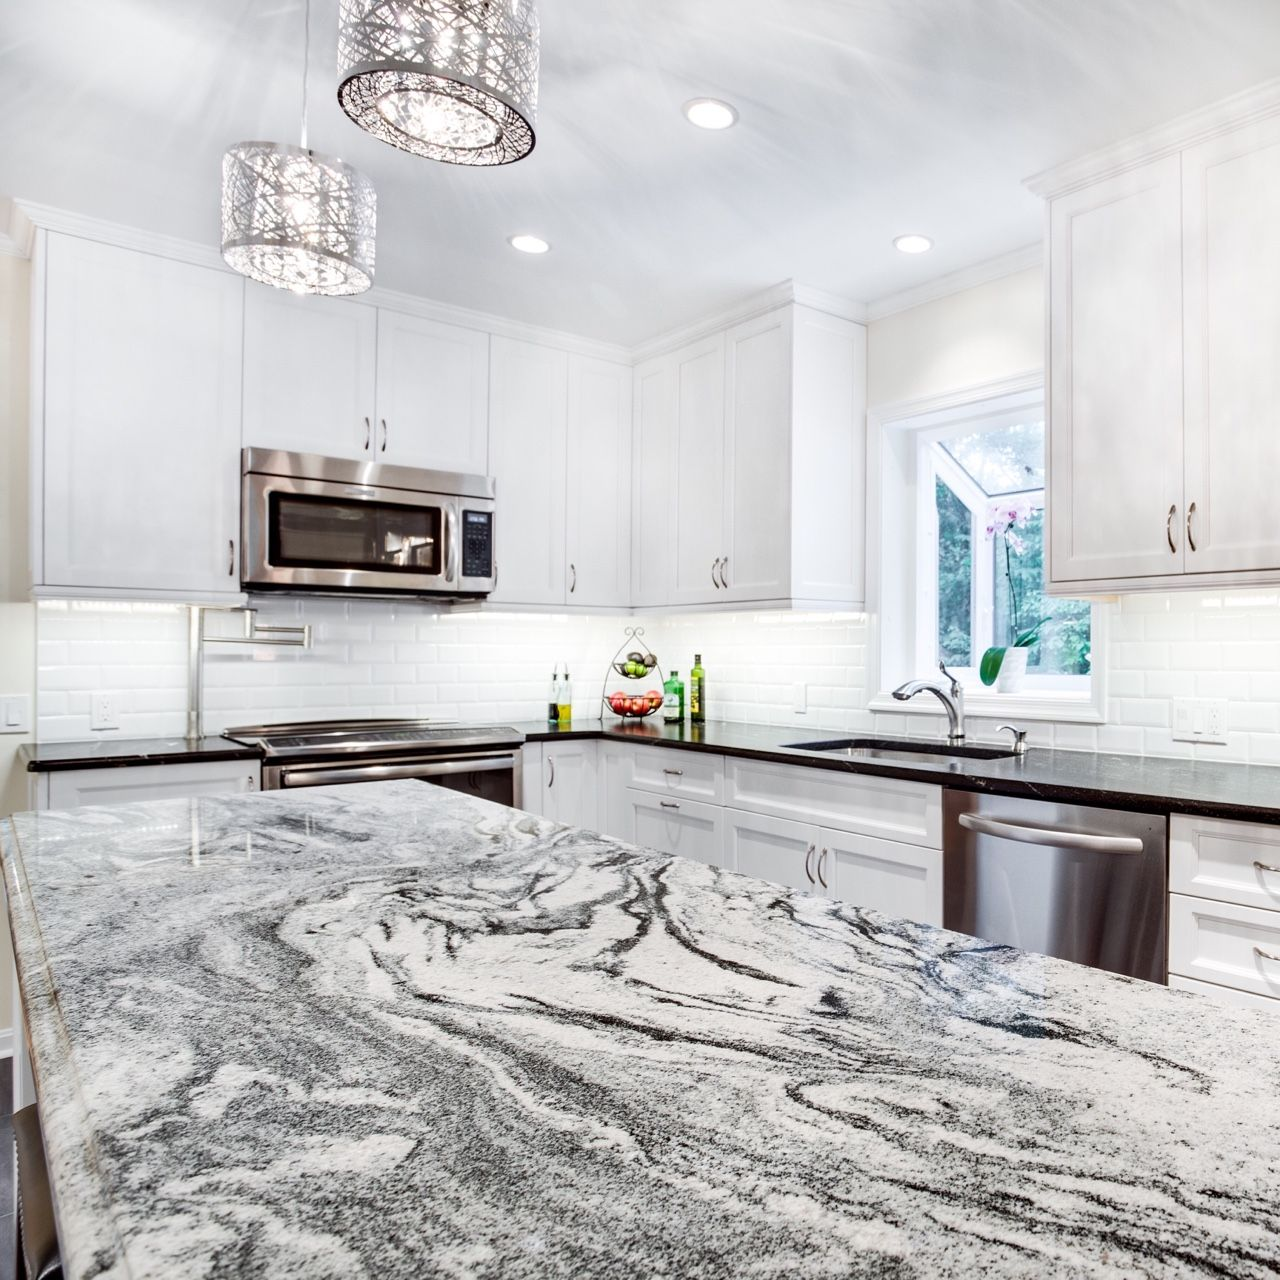 This Silver Cloud Granite Kitchen Island Countertop Makes Quite An Impact  In The Kitchen And As